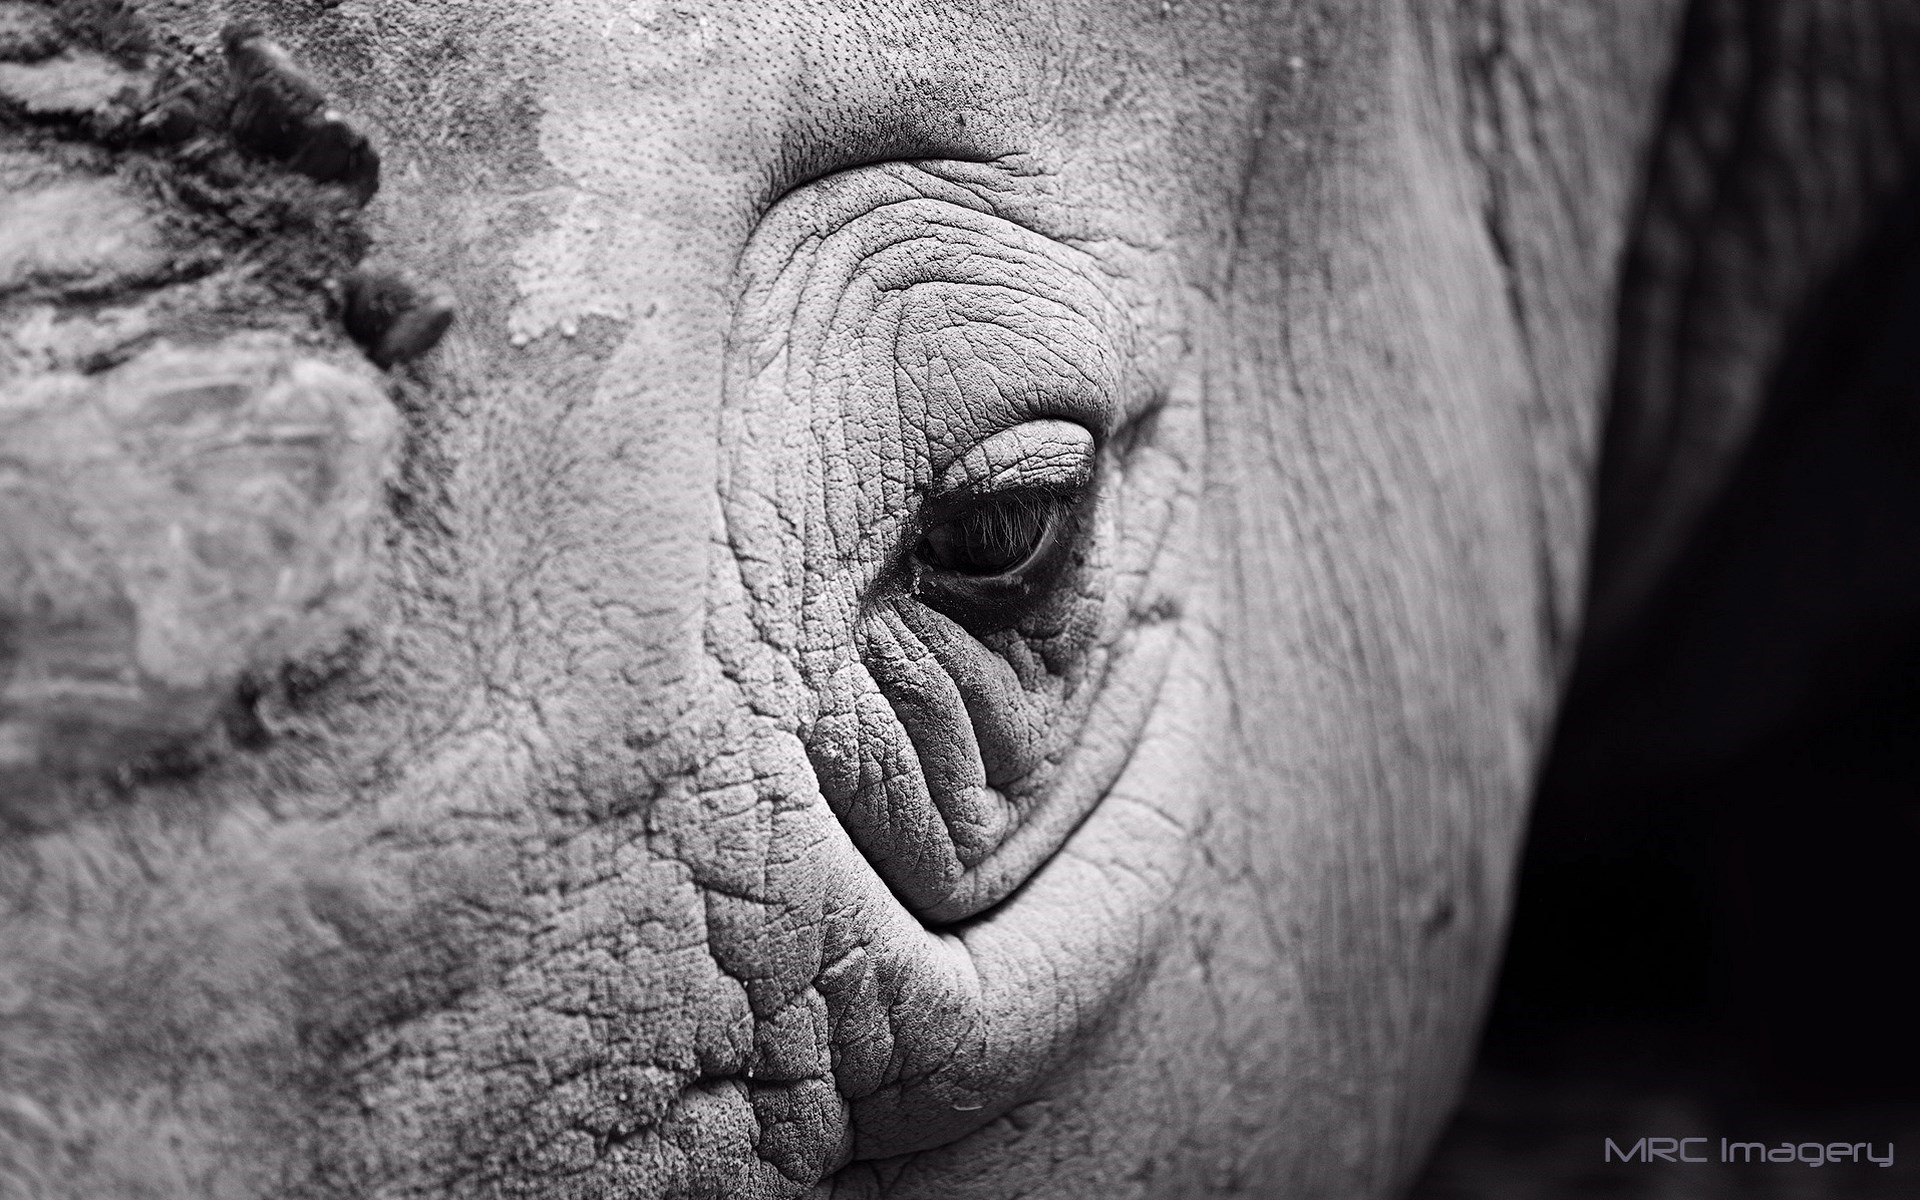 Rhinoceros Eye Close-Up